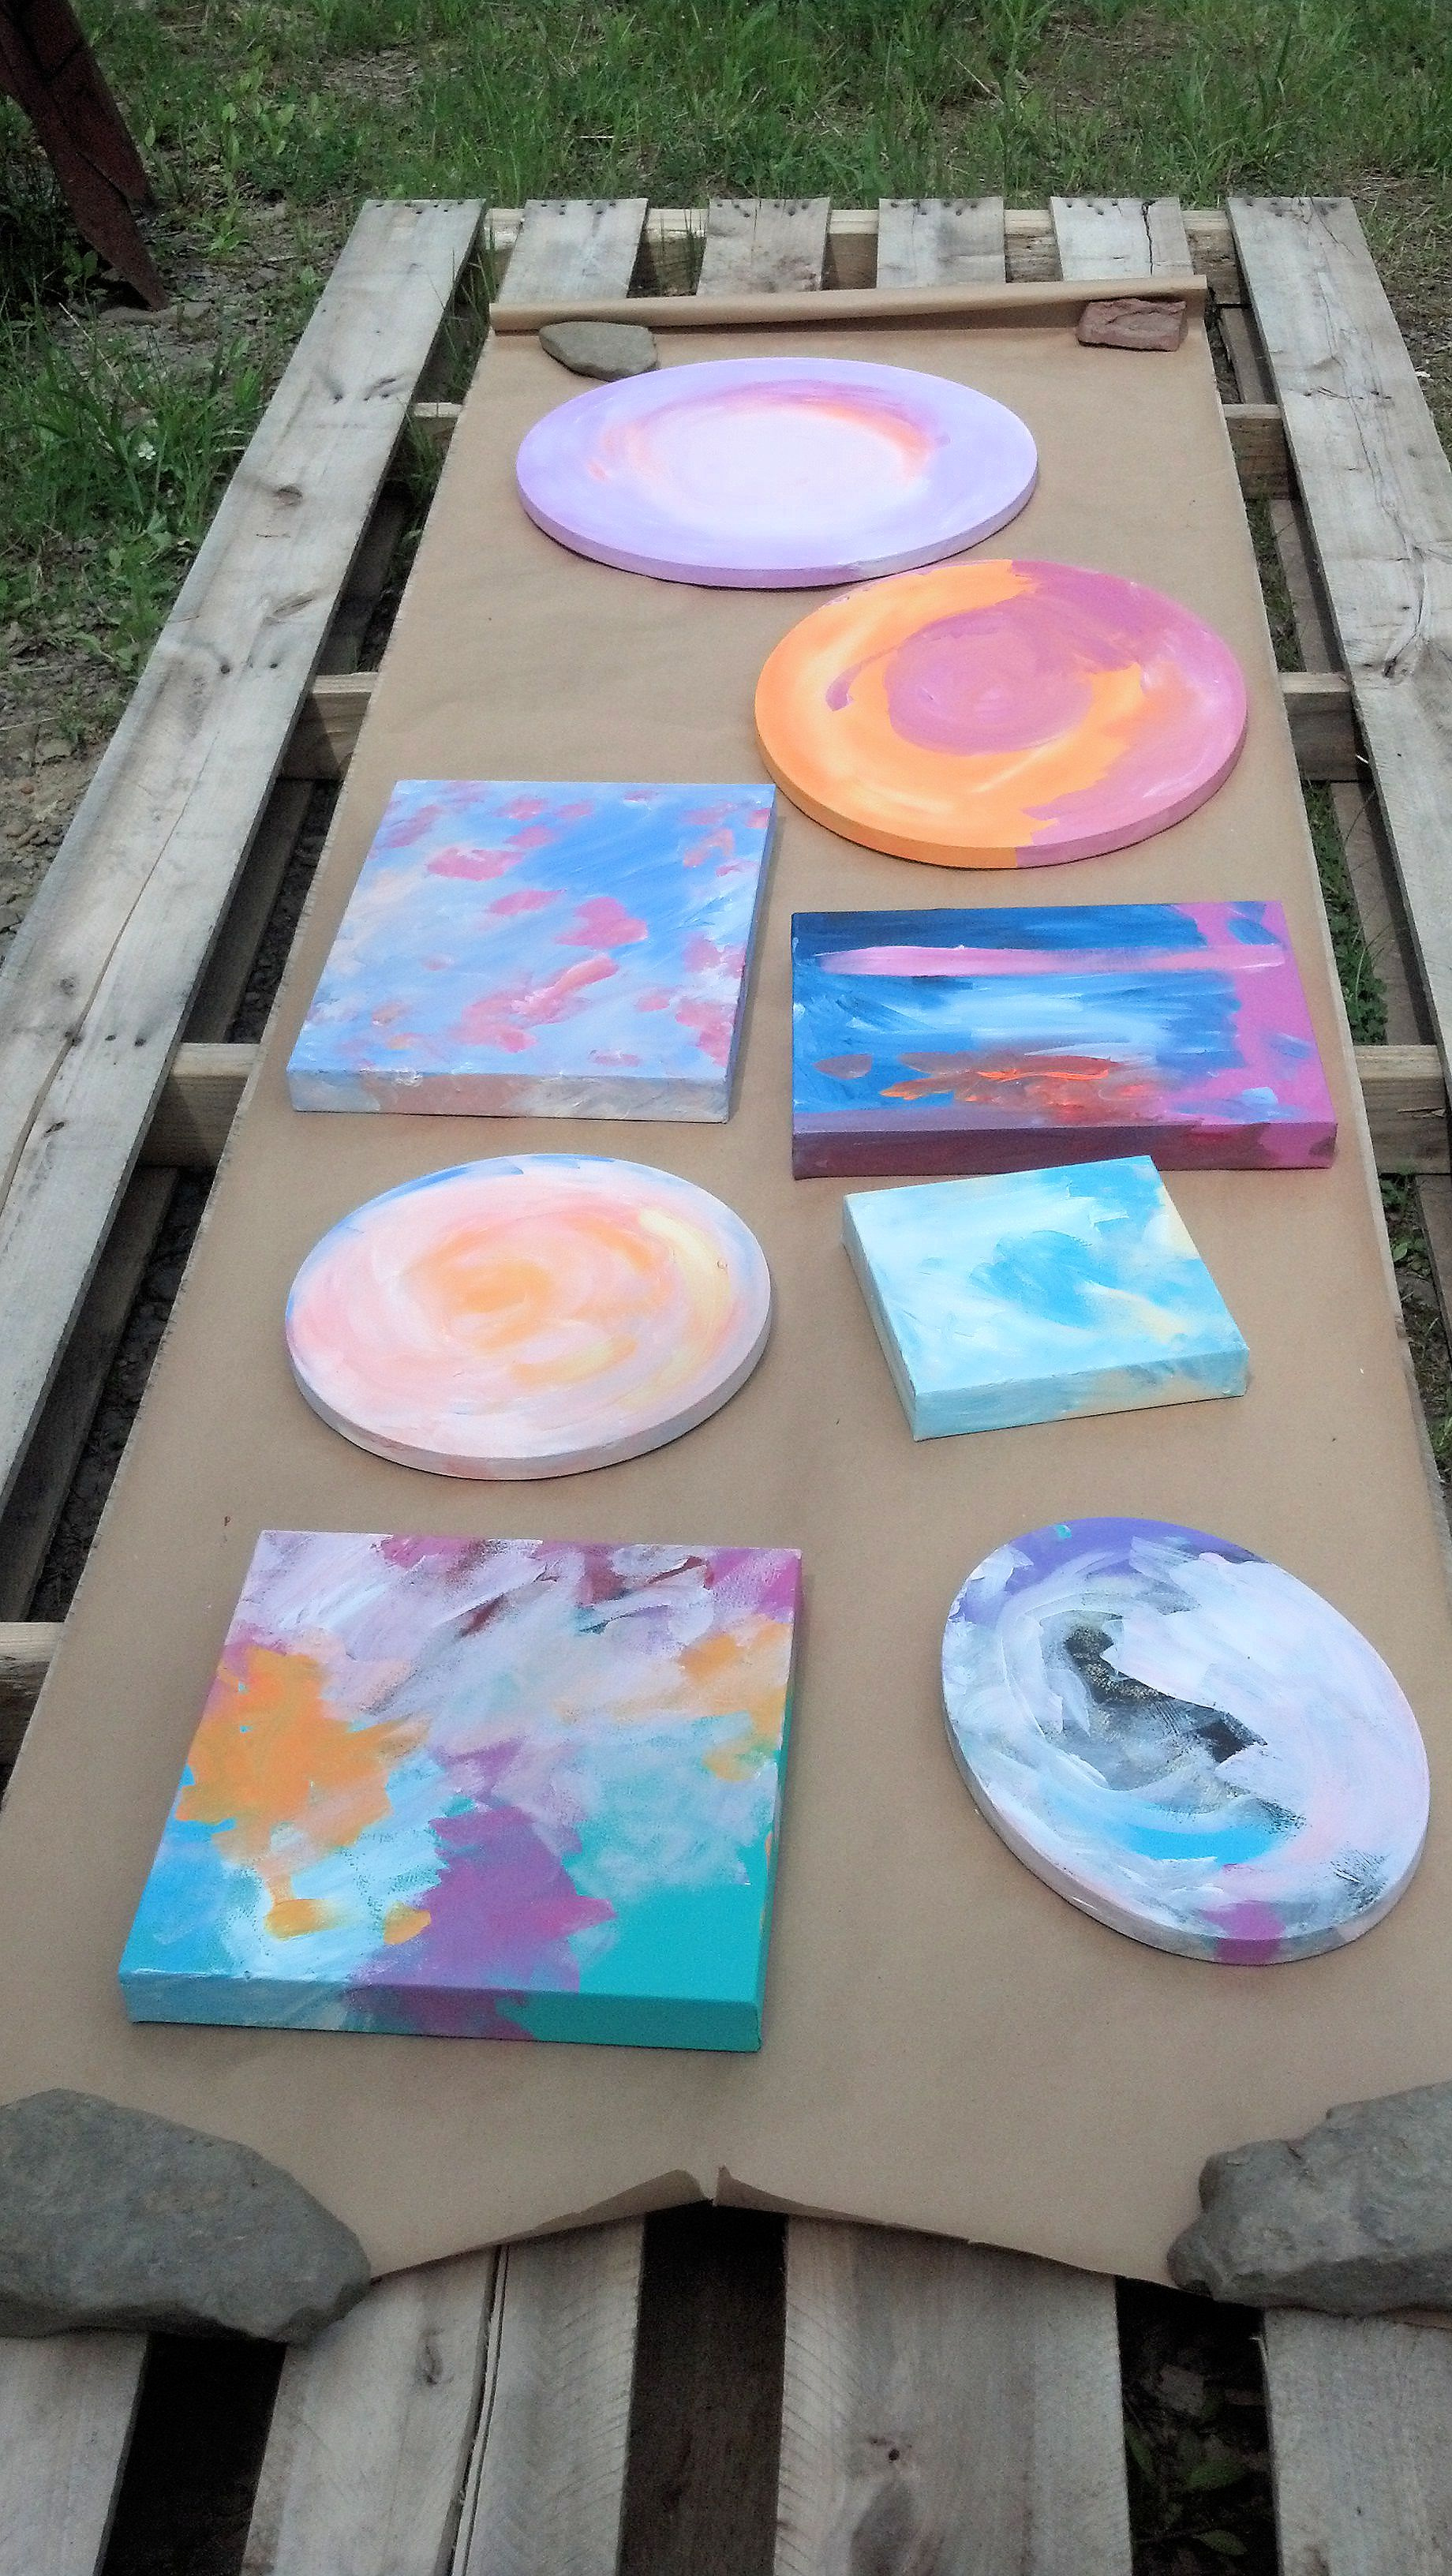 Canvases drying outdoors